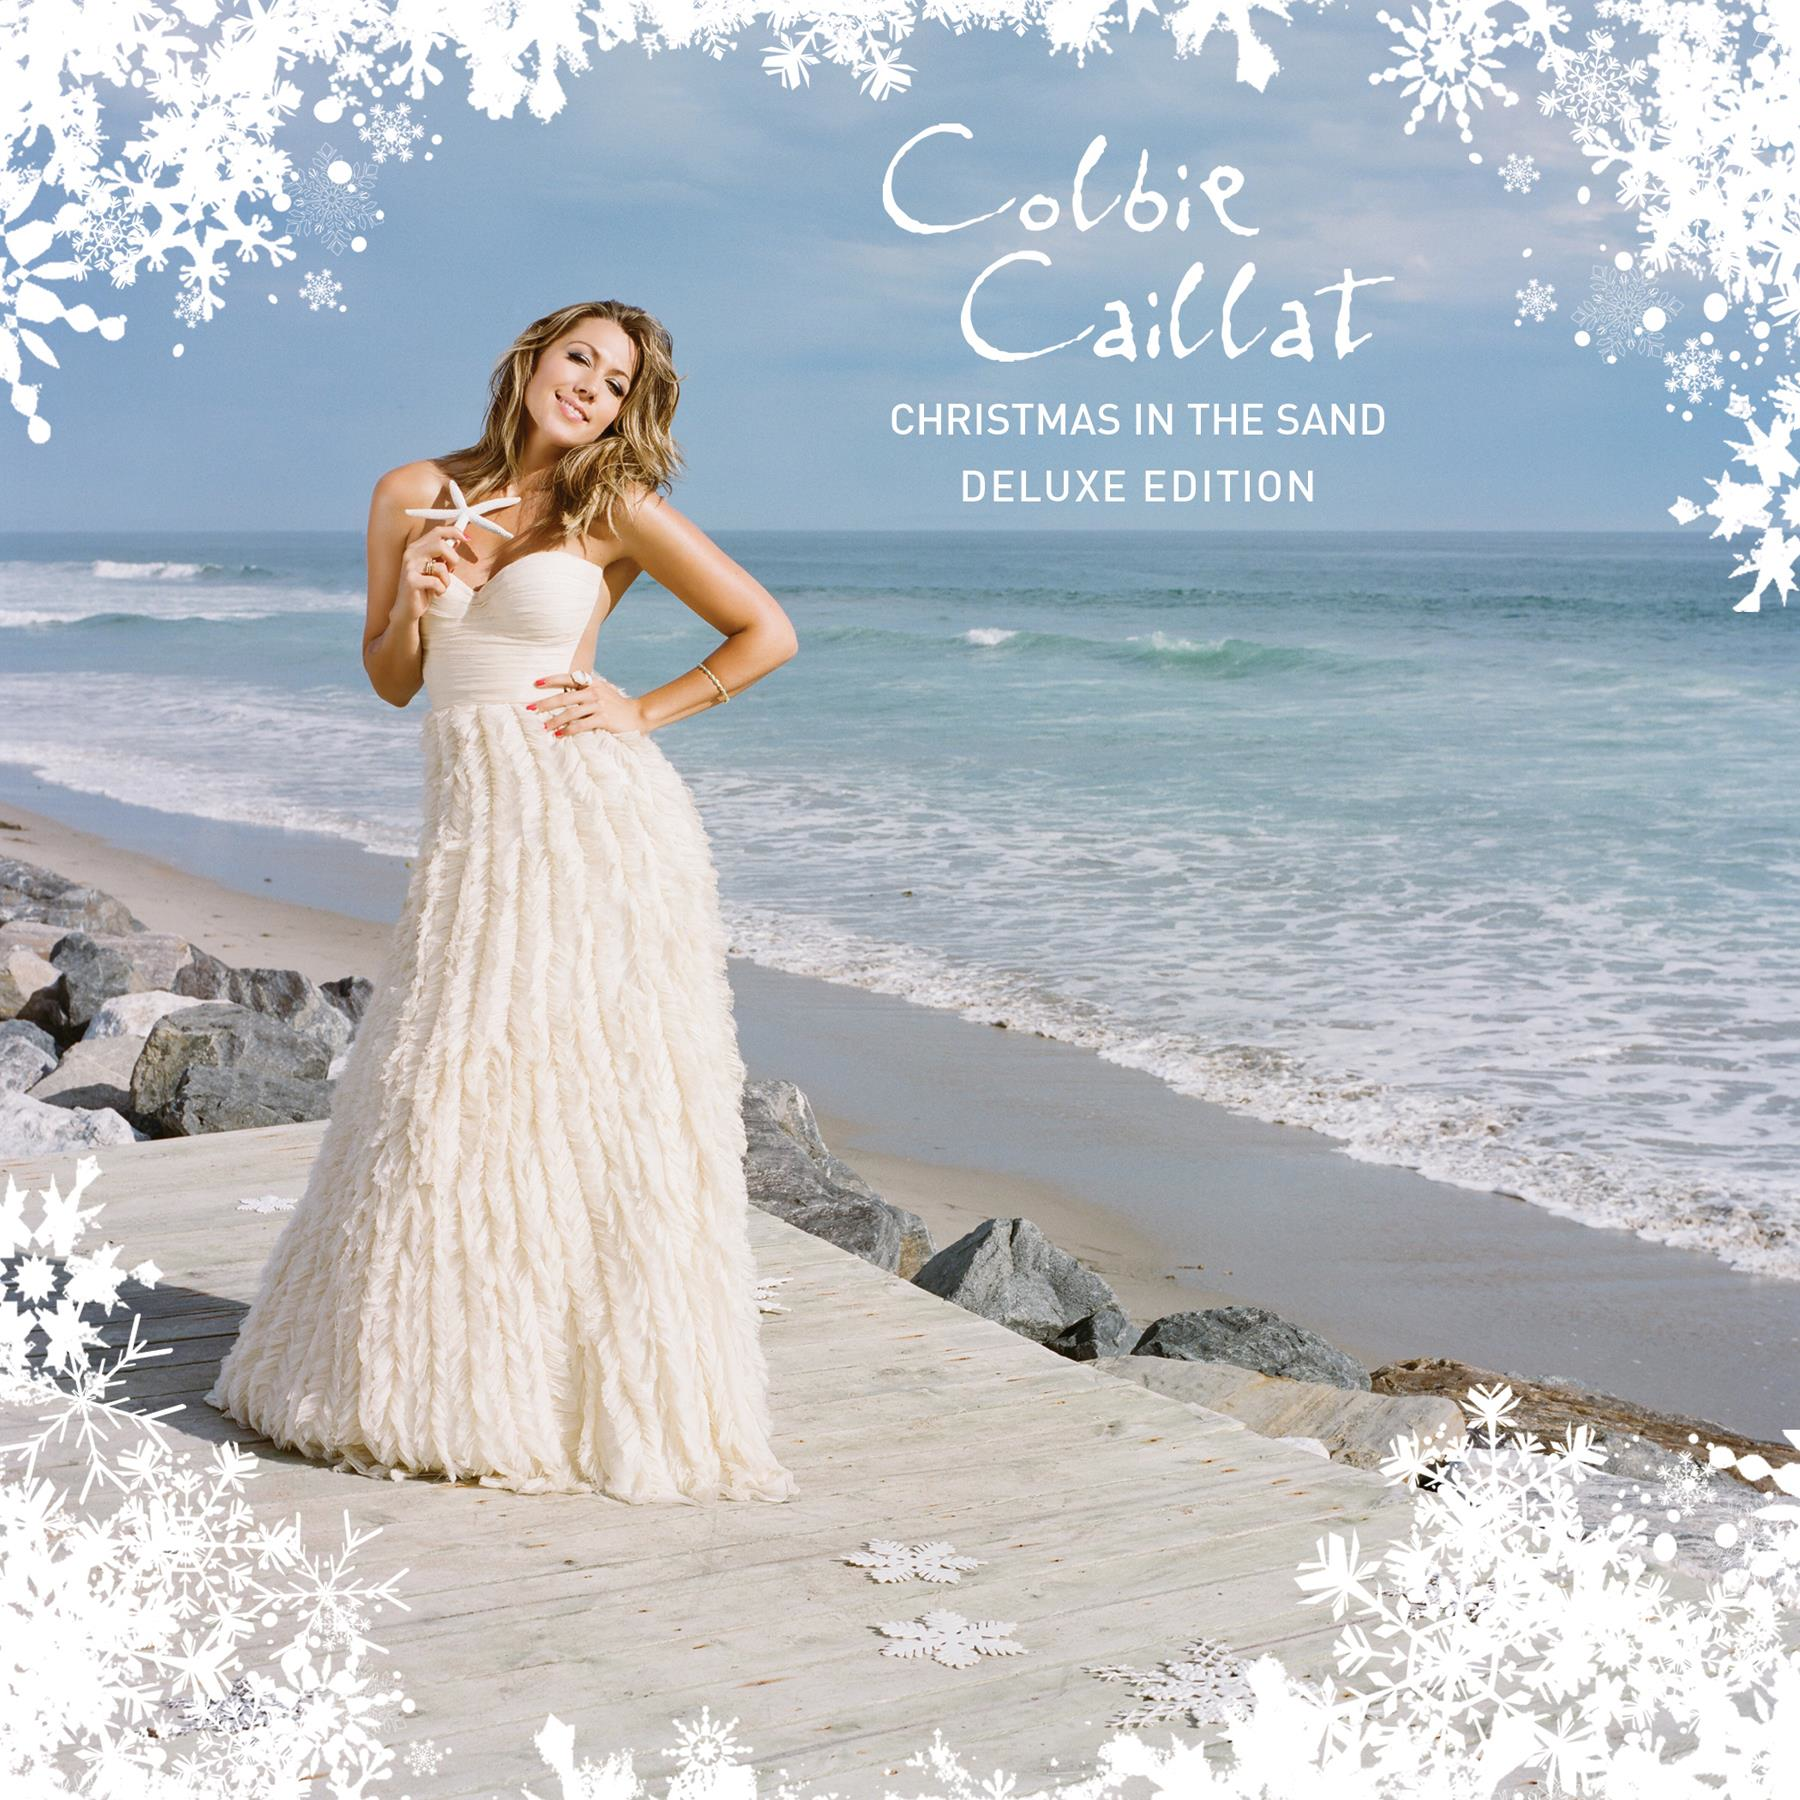 Colbie Caillat - Christmas In The Sand - Only at Target | Pinterest ...